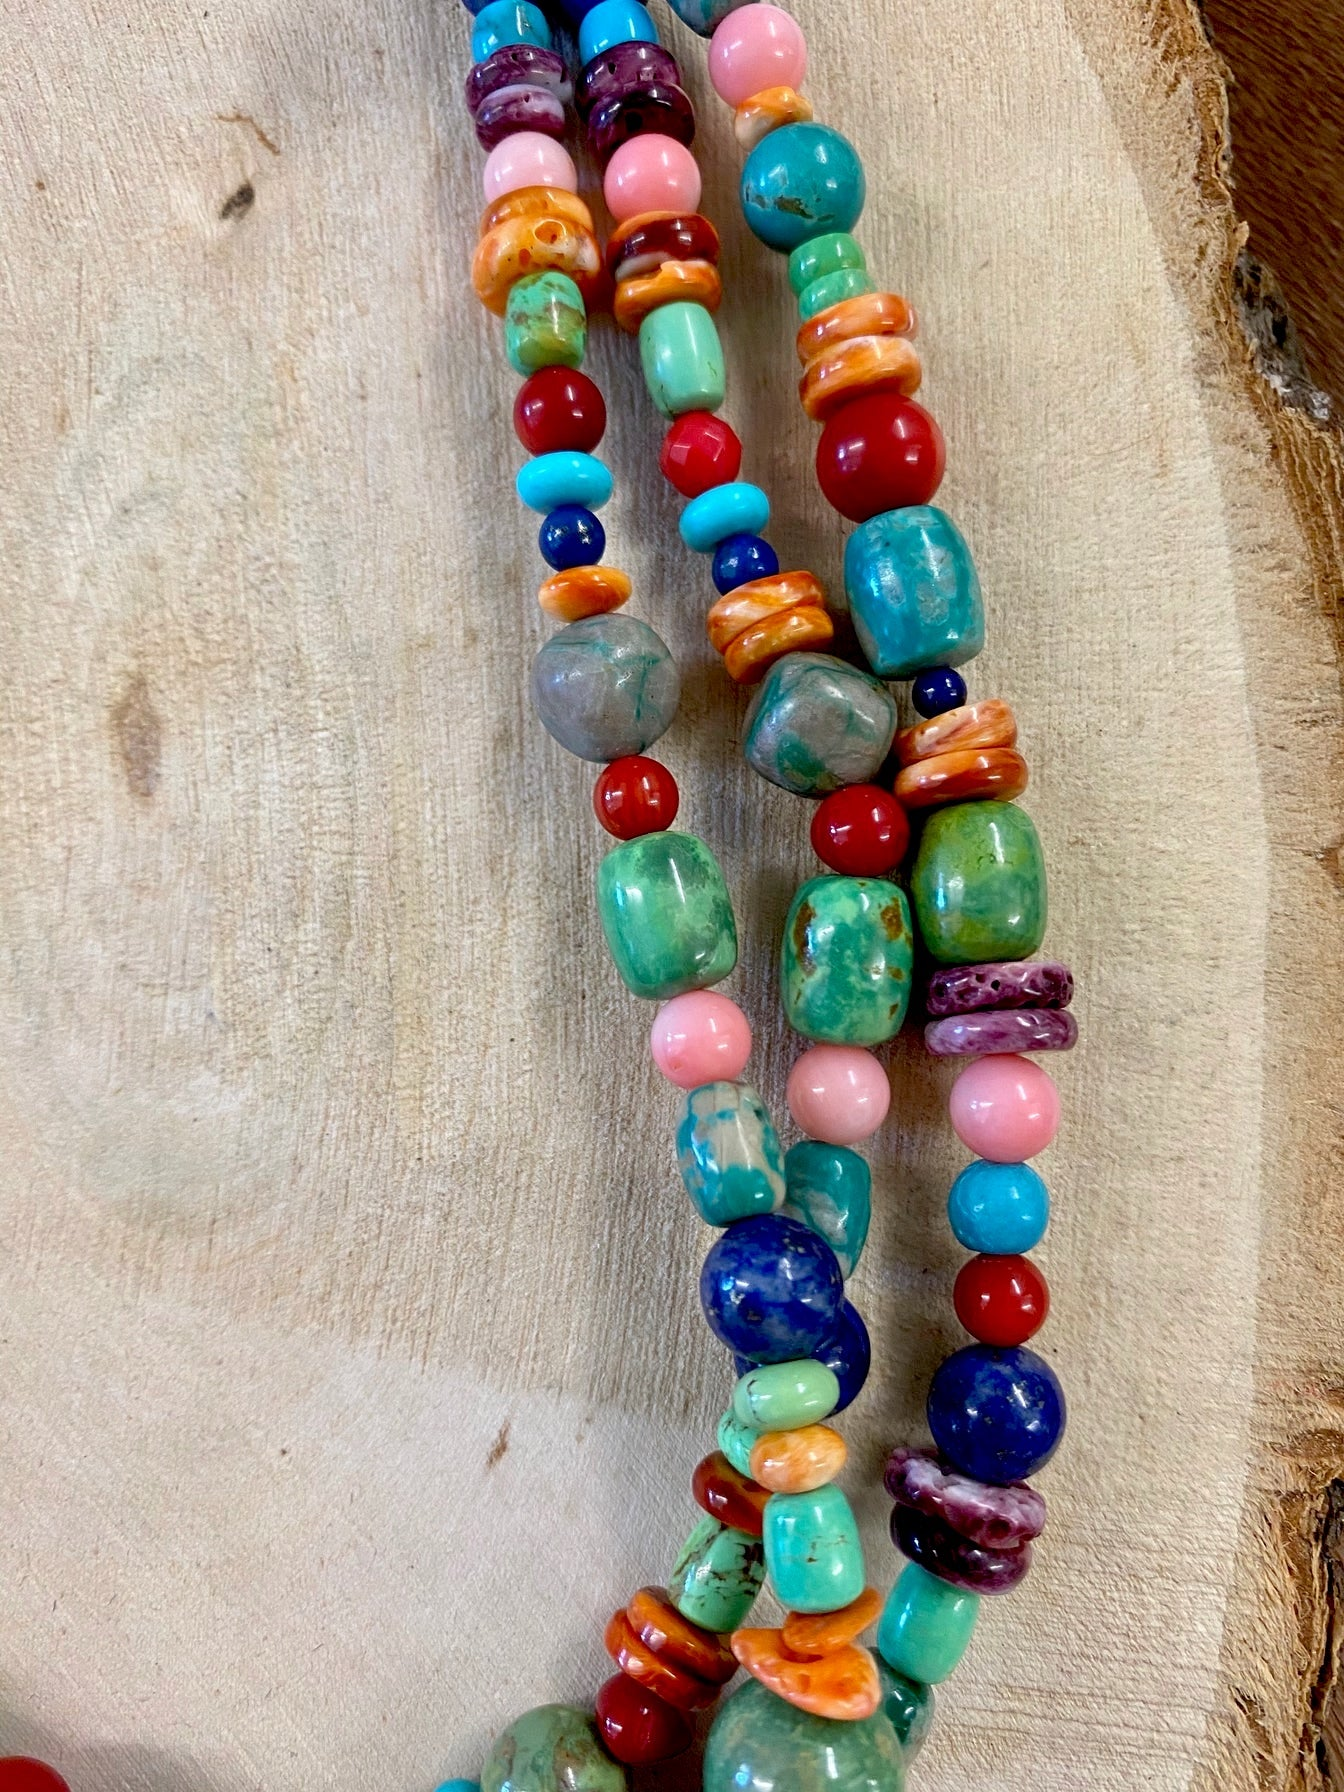 The Mixed Stone 3 Strand Necklace